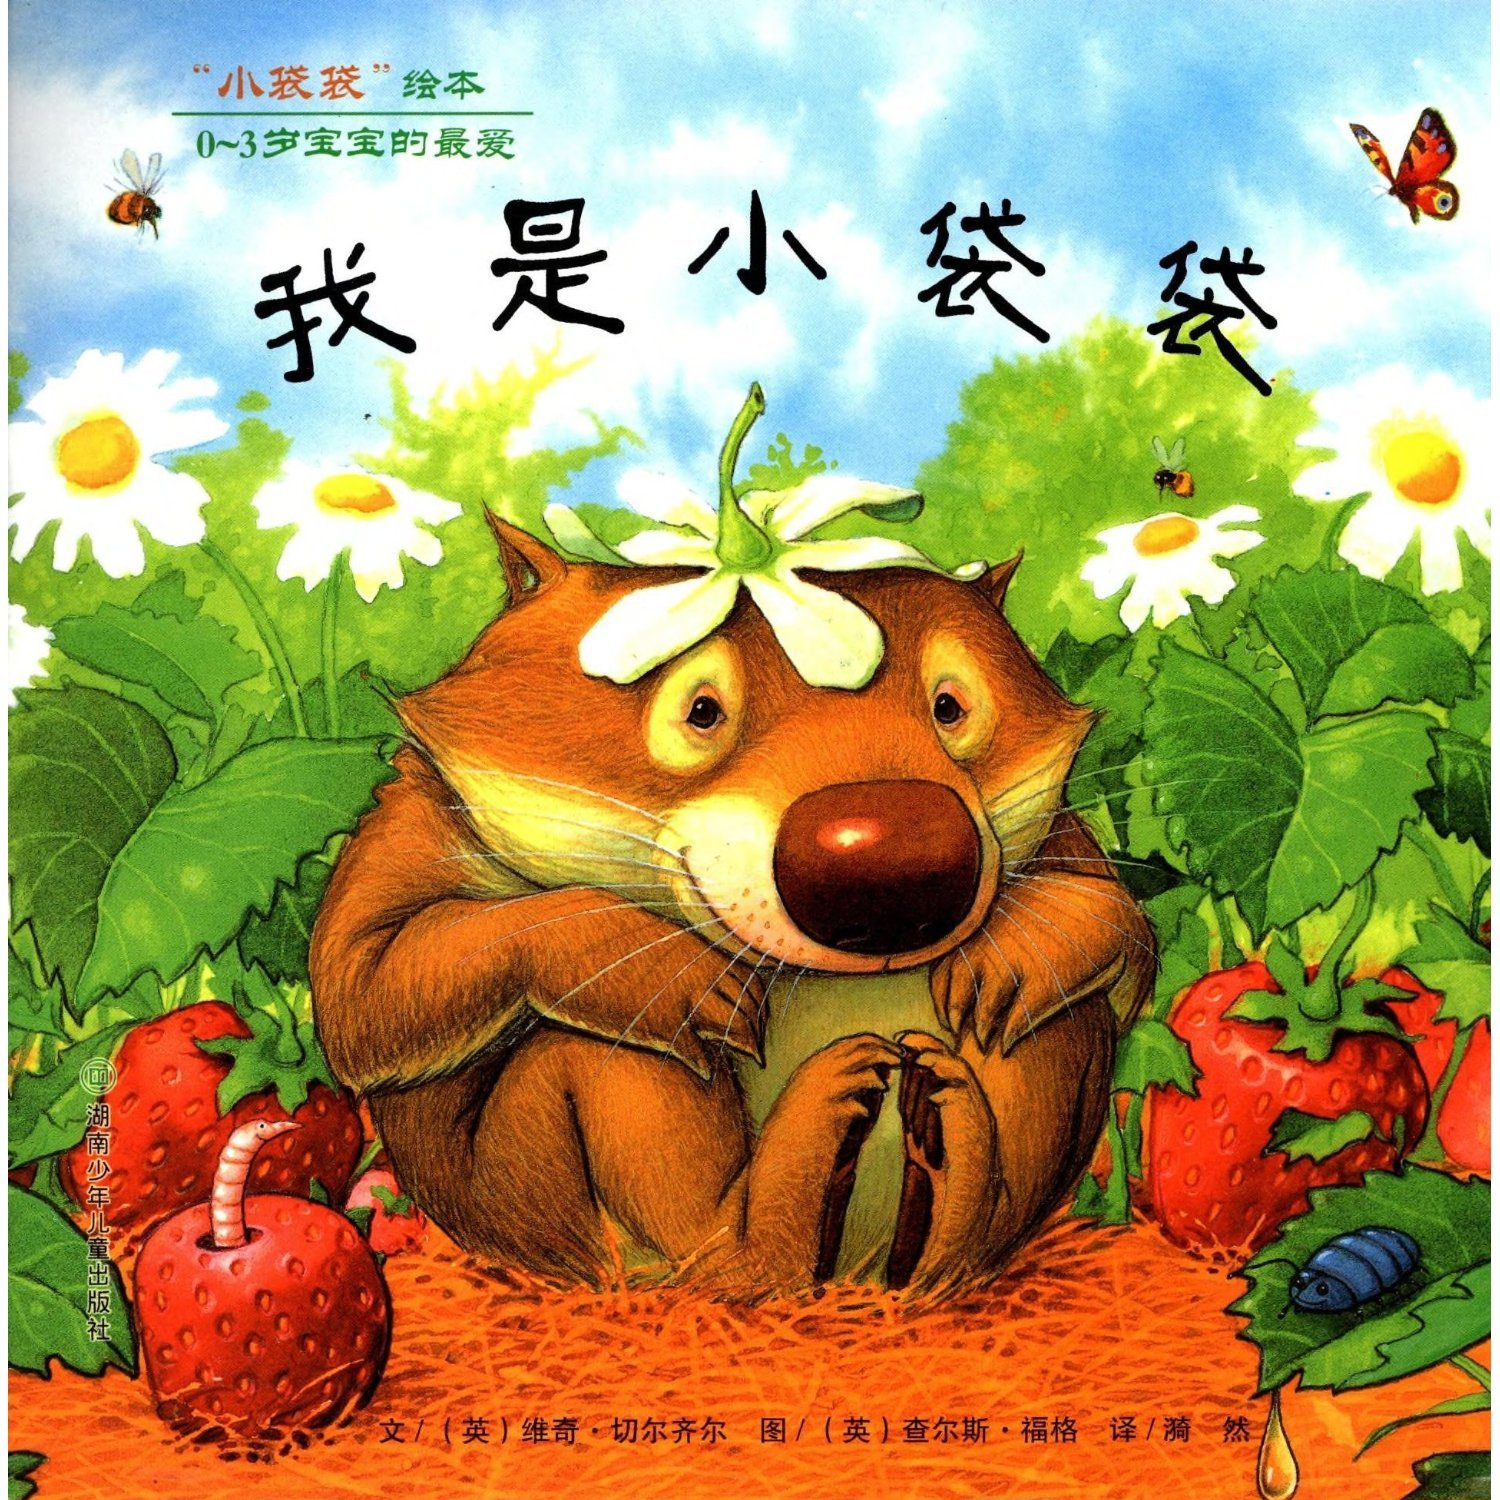 The Adventures of Little Wombat-Little Wombat Picture Book(The Favorite Of Babies Within 3 Years Old) (Chinese Edition) pdf epub